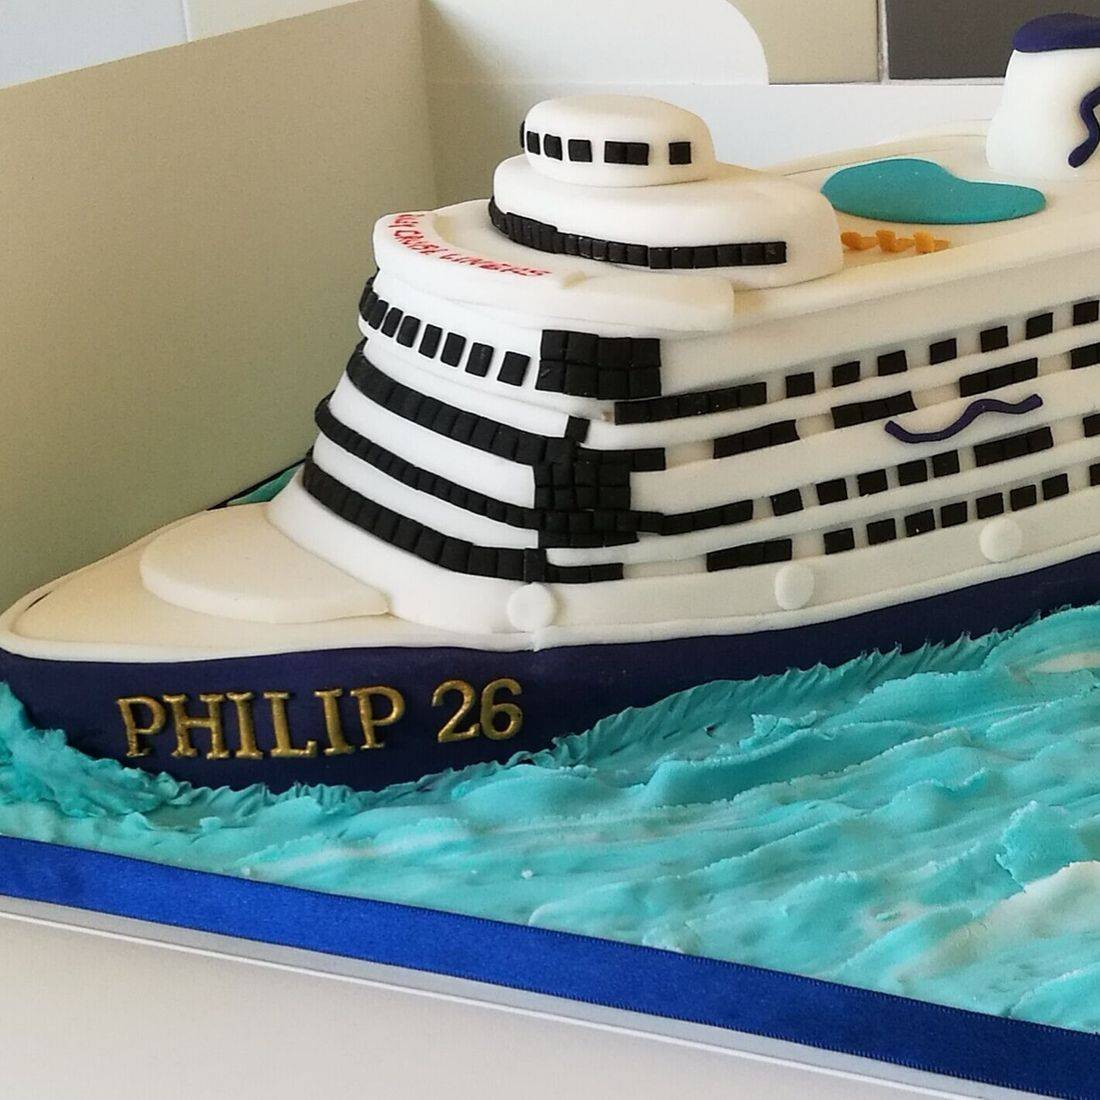 Cruise Ship Novelty Cake